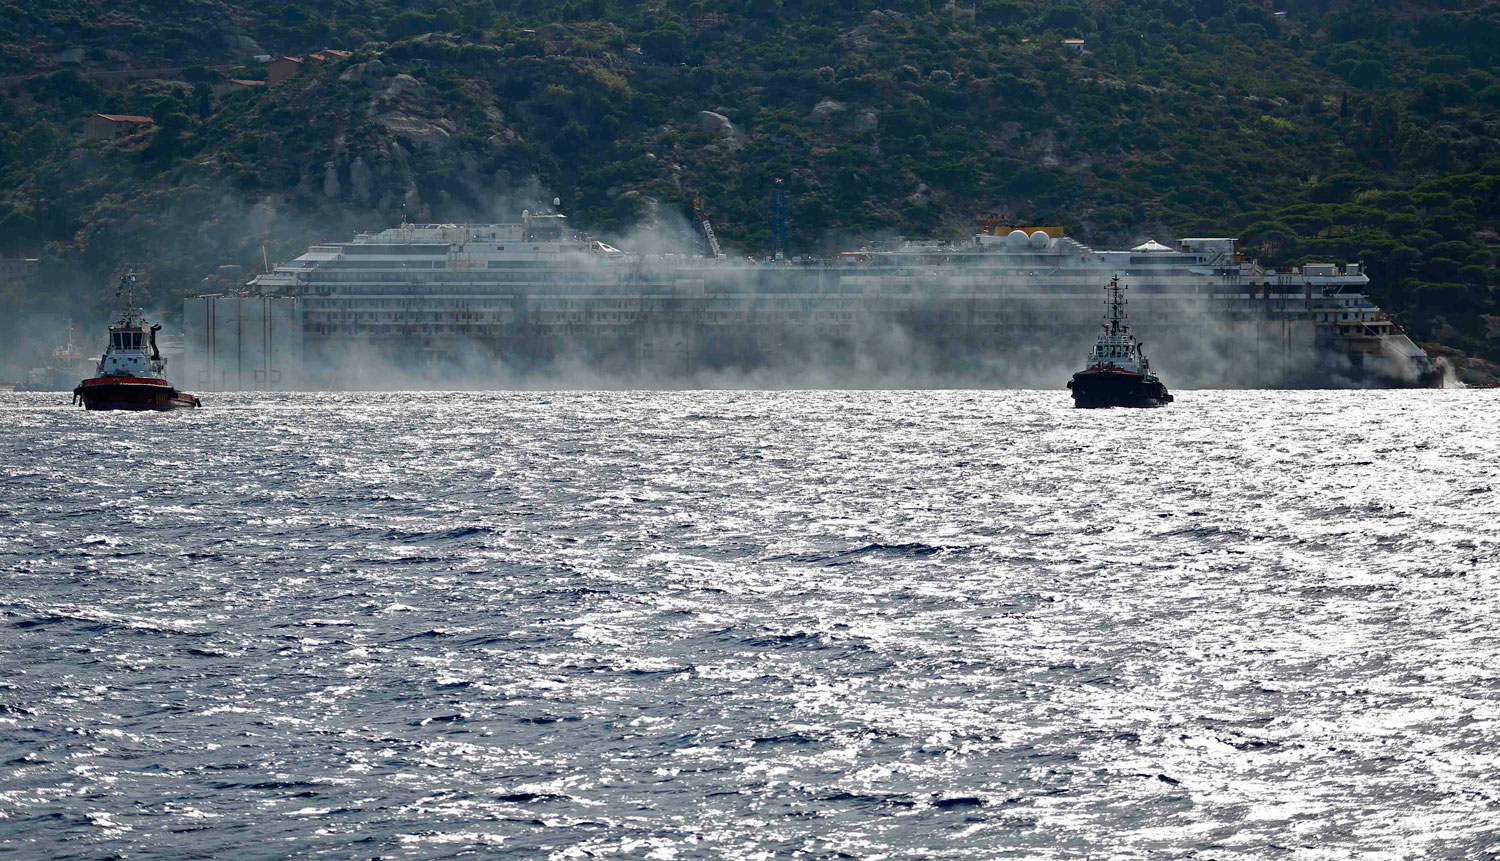 Black smoke comes out from the back of the Costa Concordia during its re-float operation at Giglio harbor, Italy on July 23, 2014.